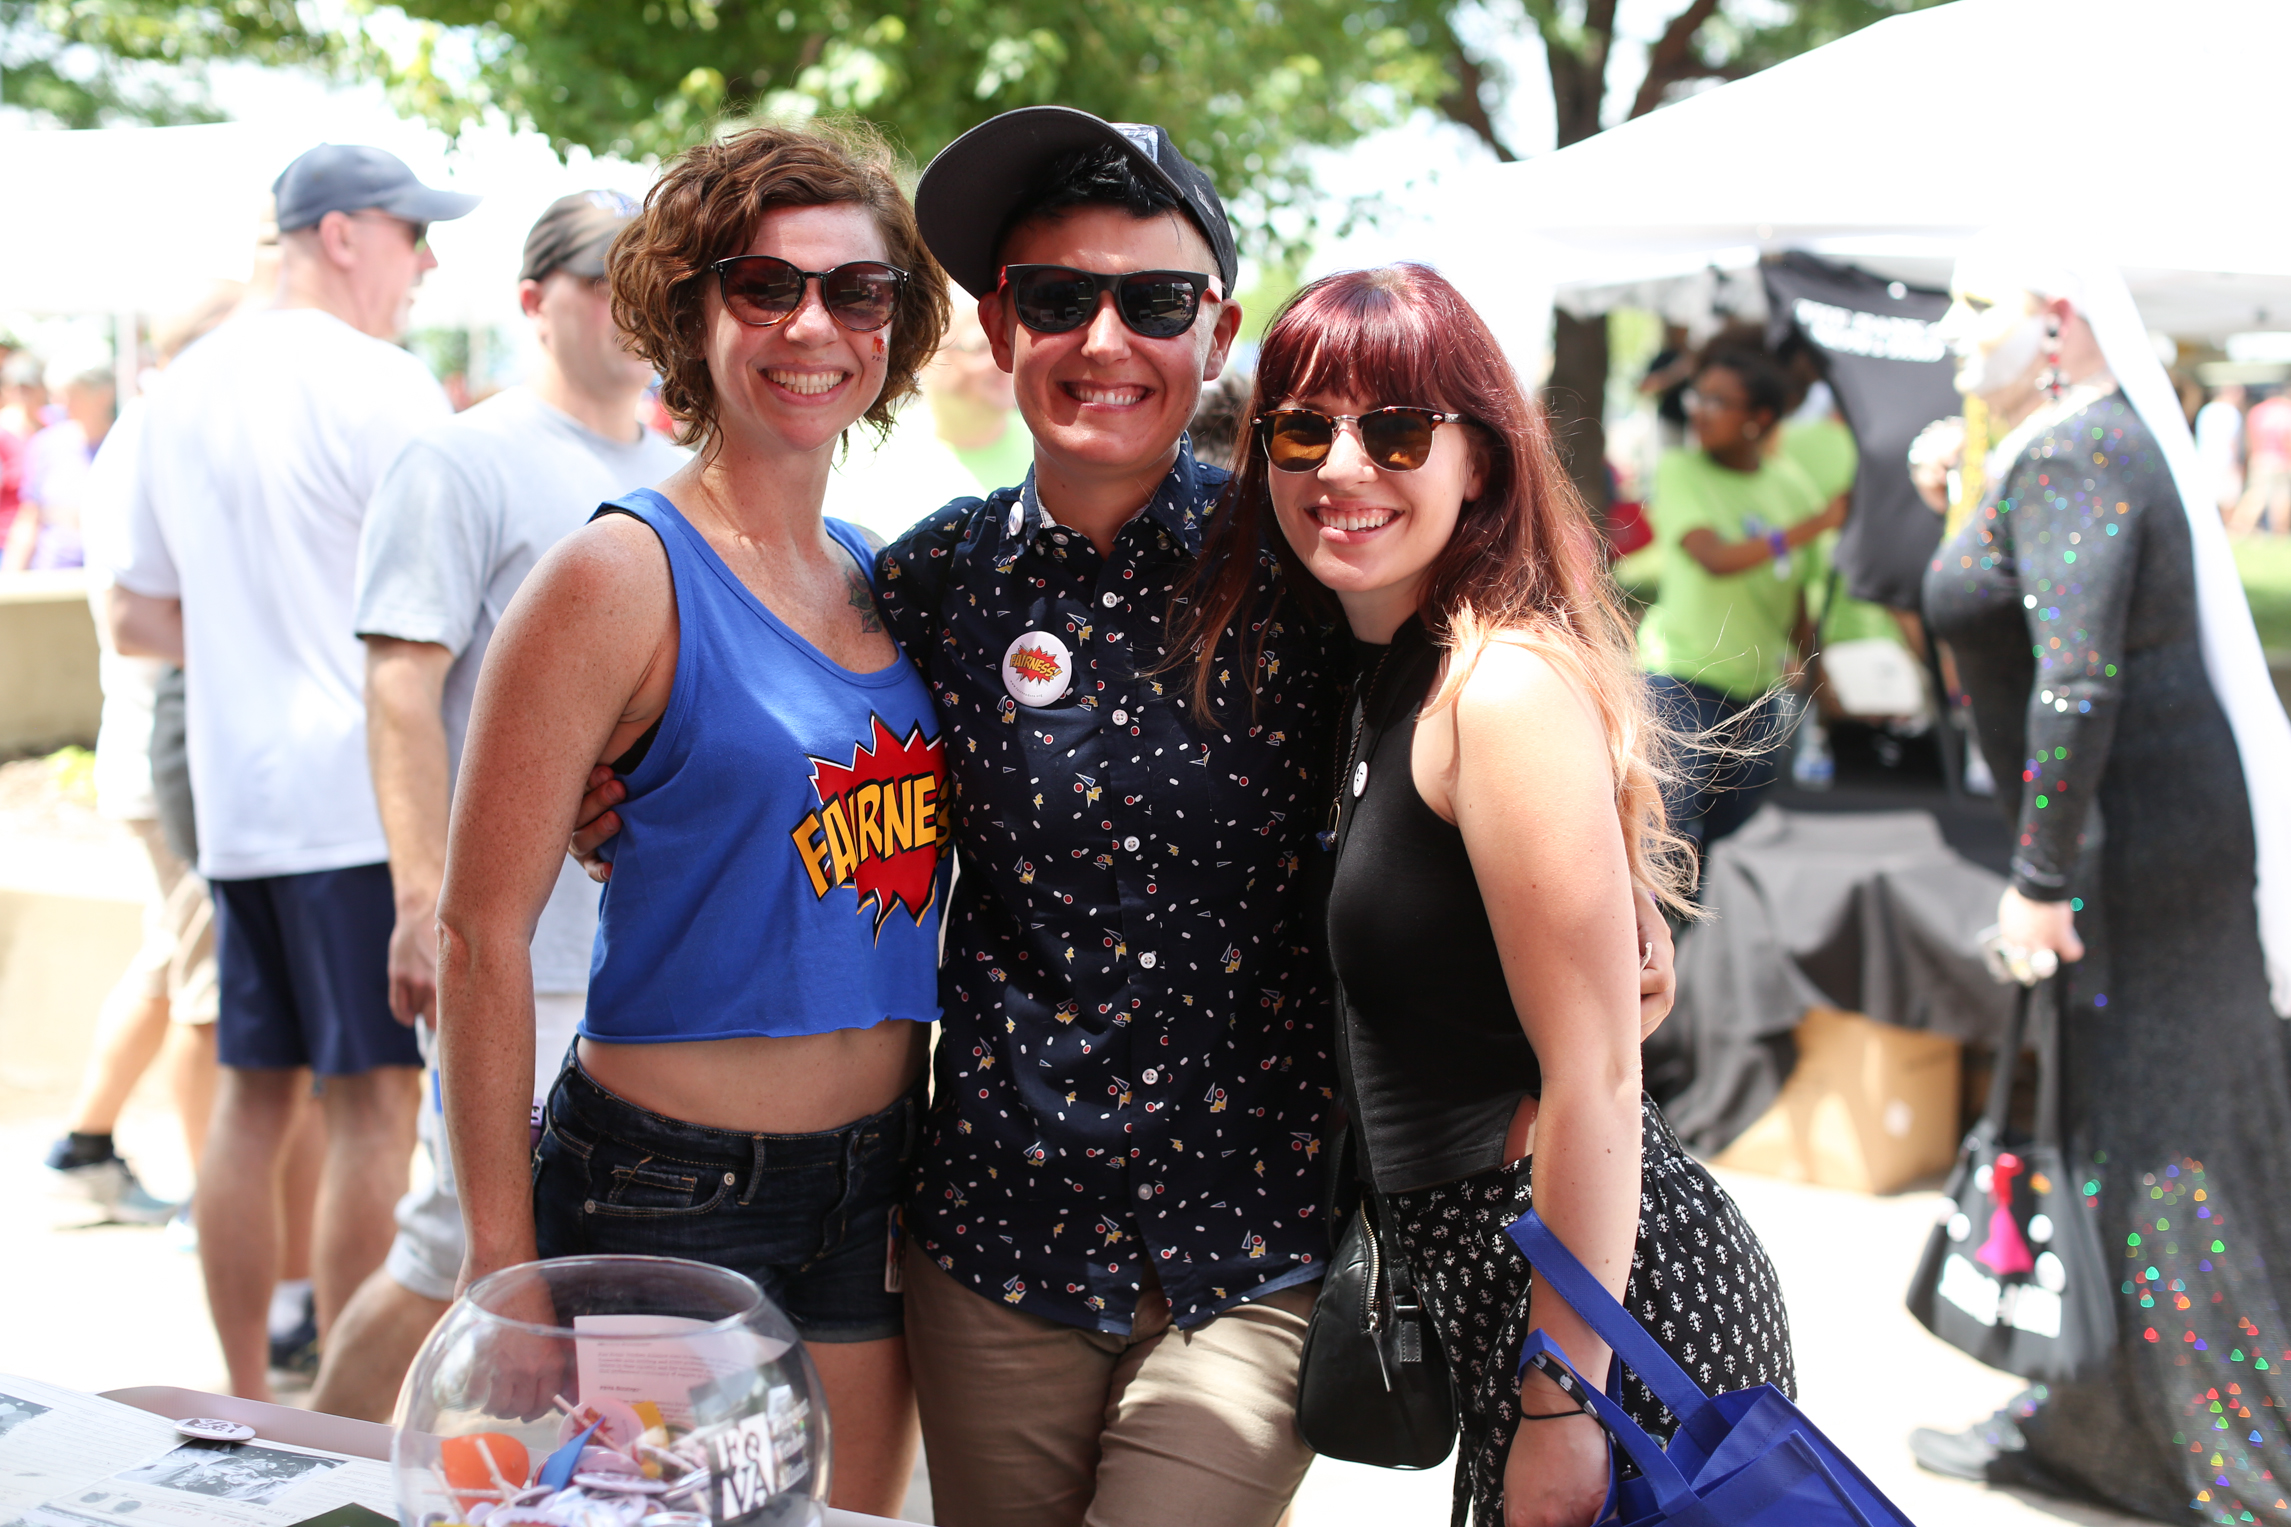 PRIDE W-FEVA 2015 EDITED CRYSTAL LUDWICK PHOTO (60 of 83).jpg